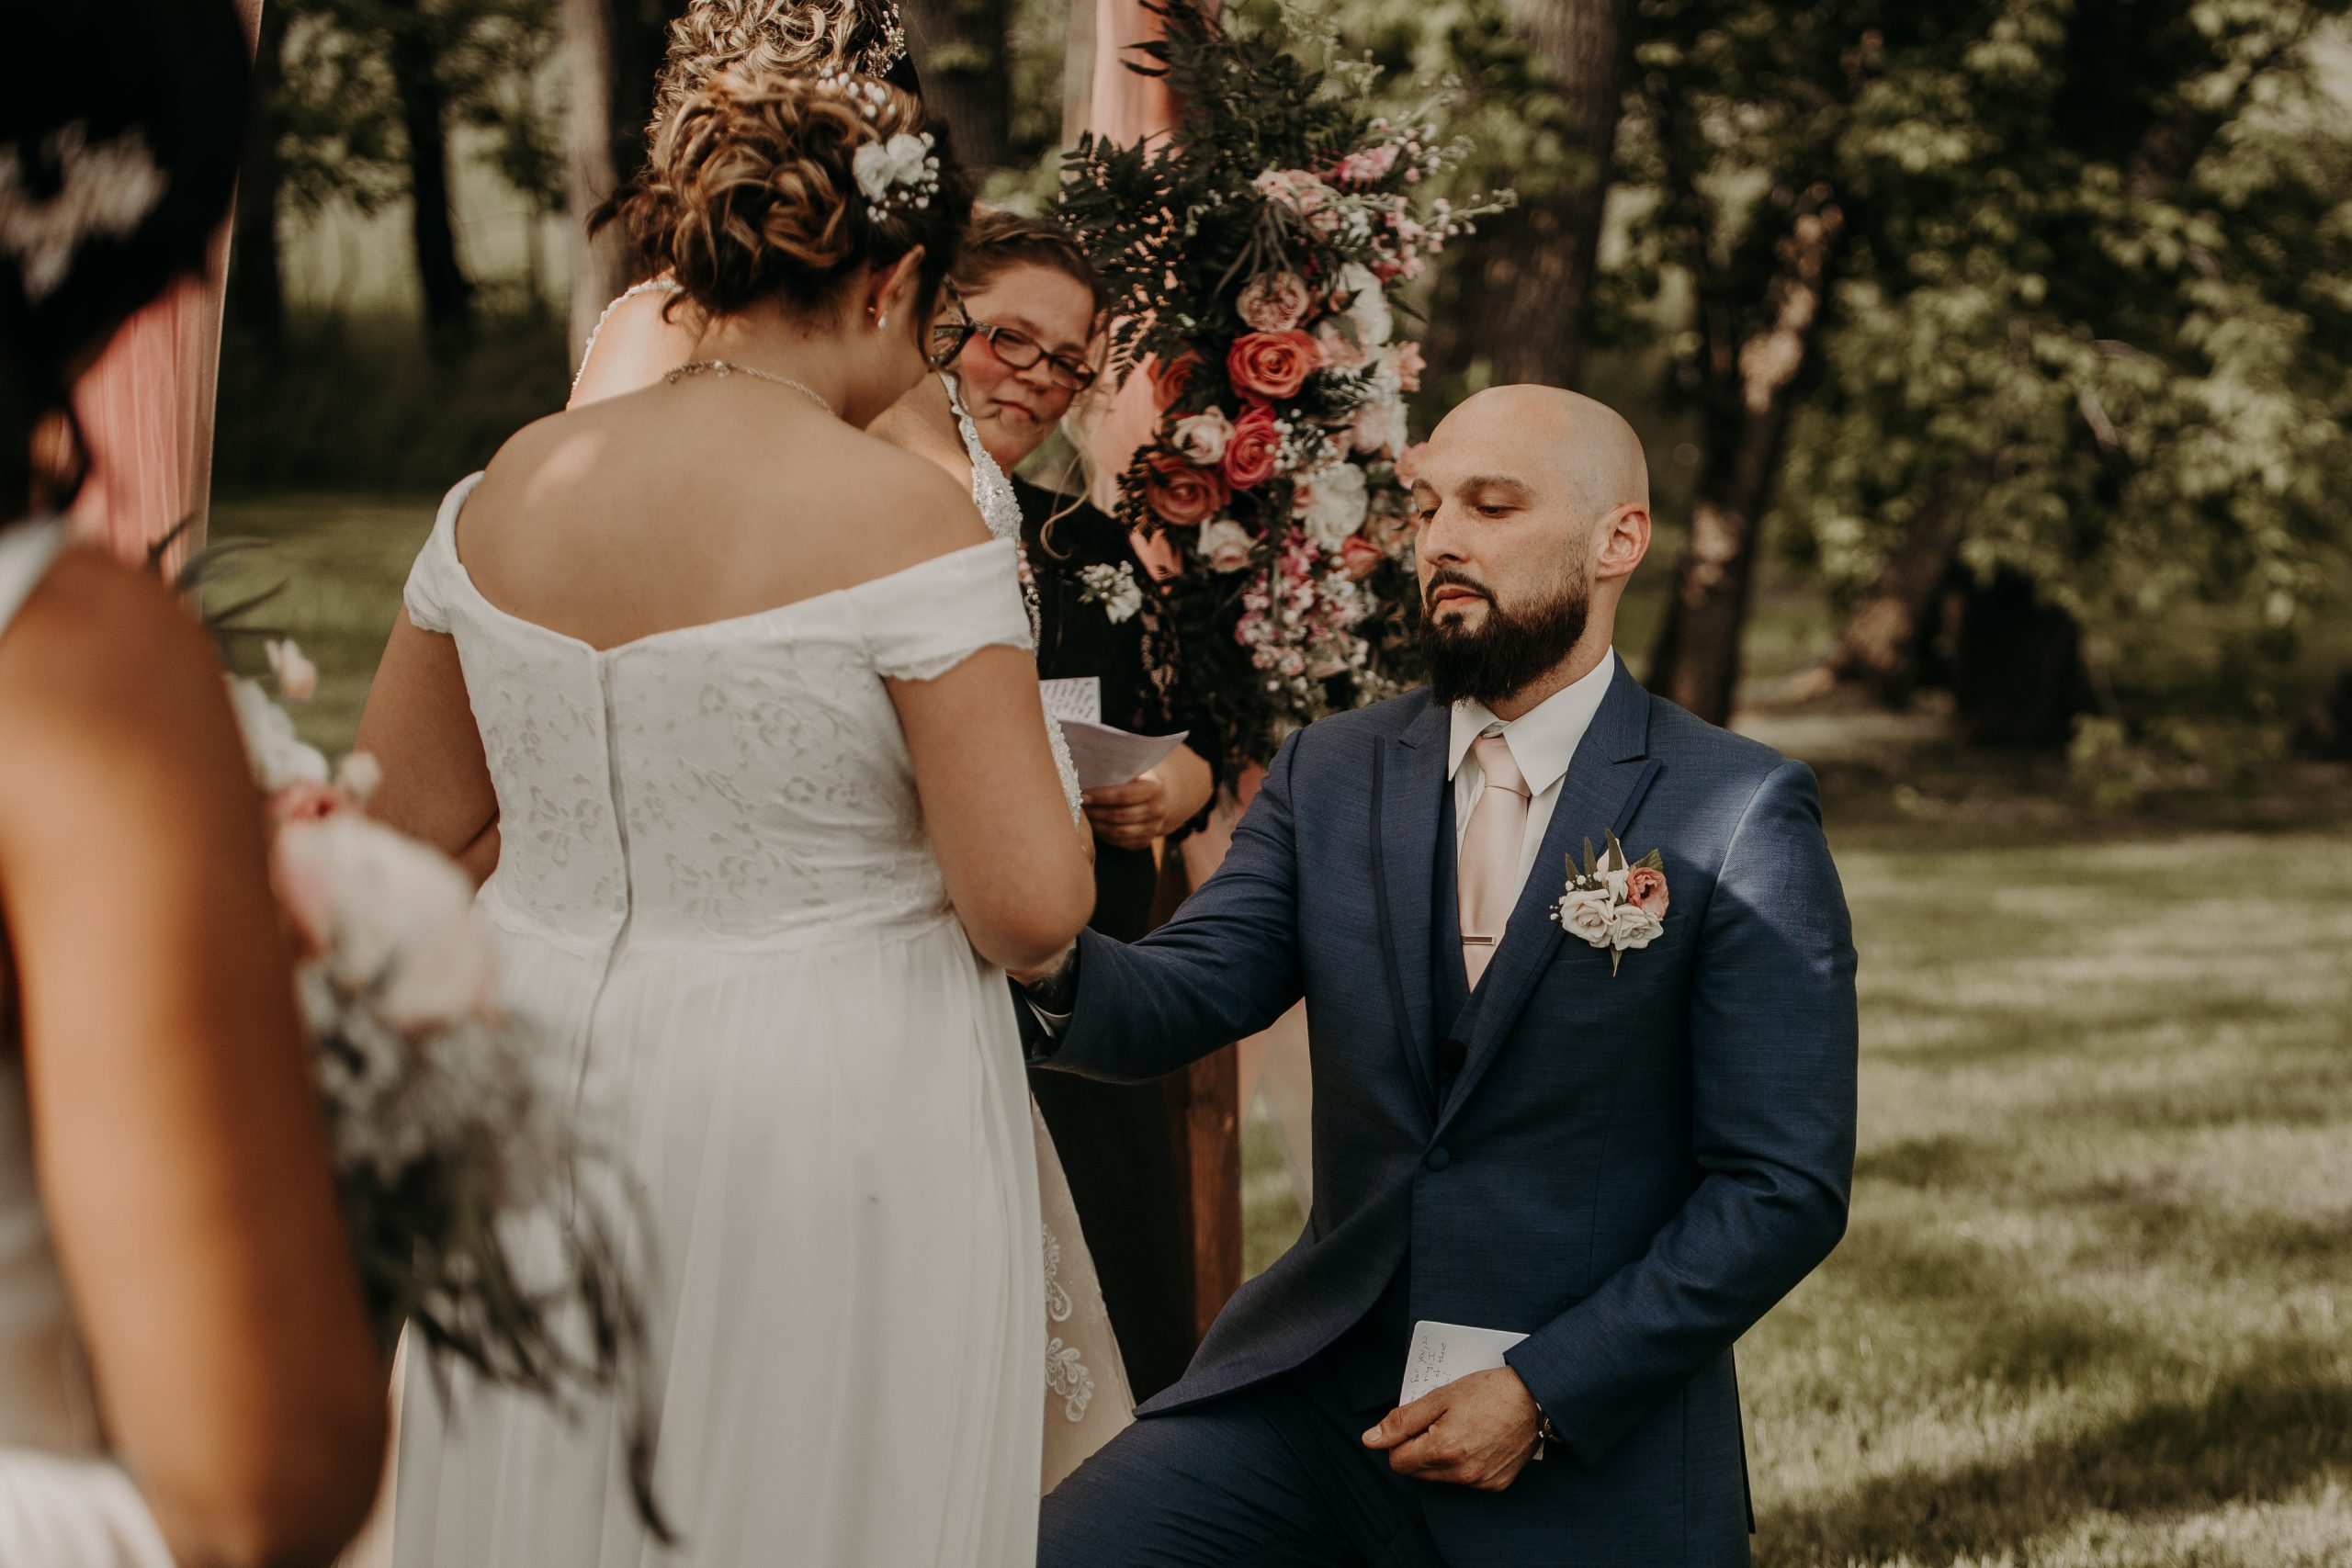 Richard makes a promise to his new stepdaughter. Christine and Richard wed on the Chestnut Hill Villa grounds on May of 2019. This organic ethereal styled wedding was captured by Garnet Dahlia Photography and featured on Dream Weddings.